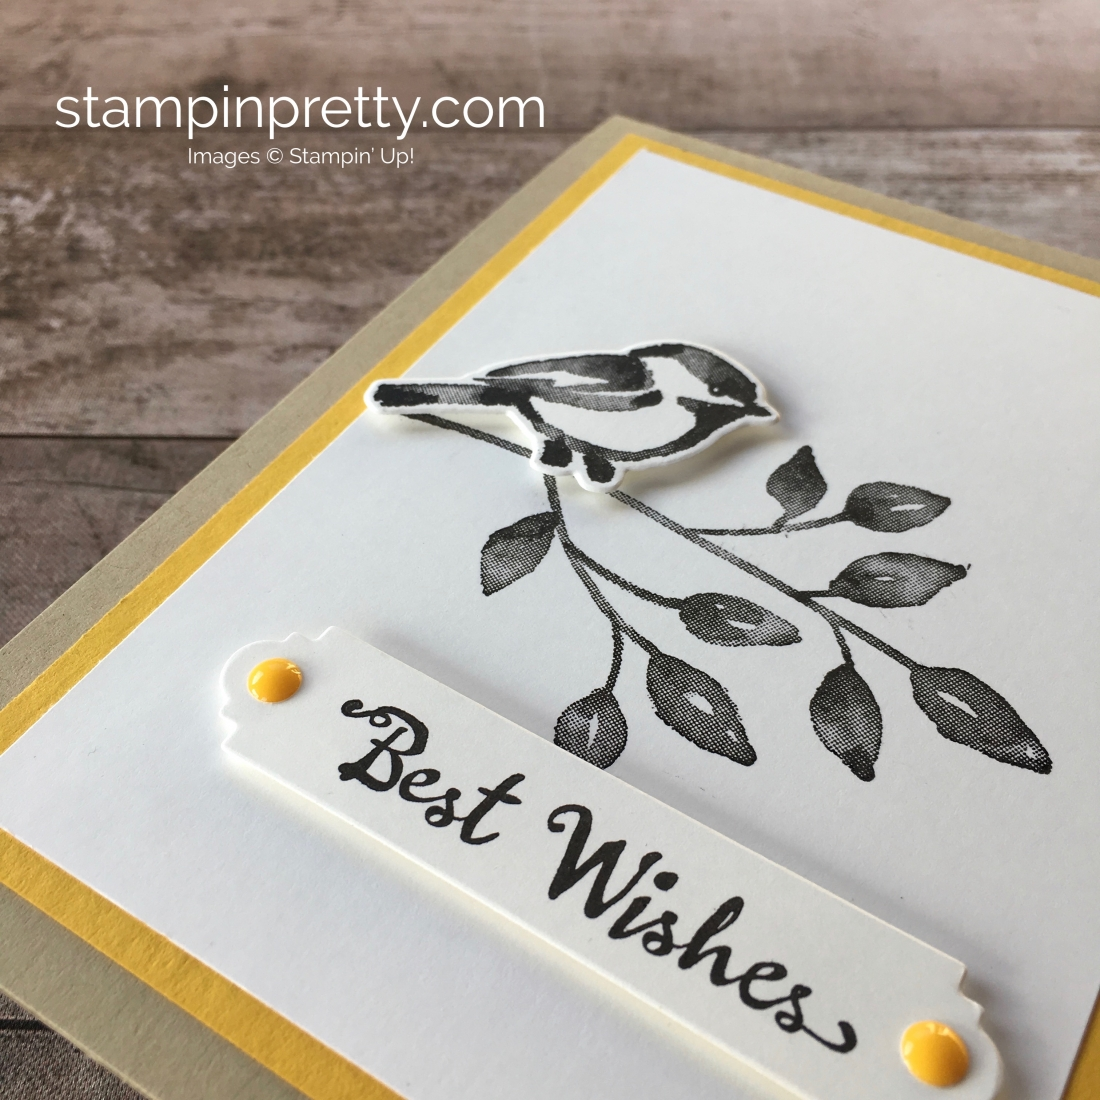 Create a simple birthday card with Stampin Up Petal Palette & Petals & More Framelits Dies - Mary Fish StampinUp Idea